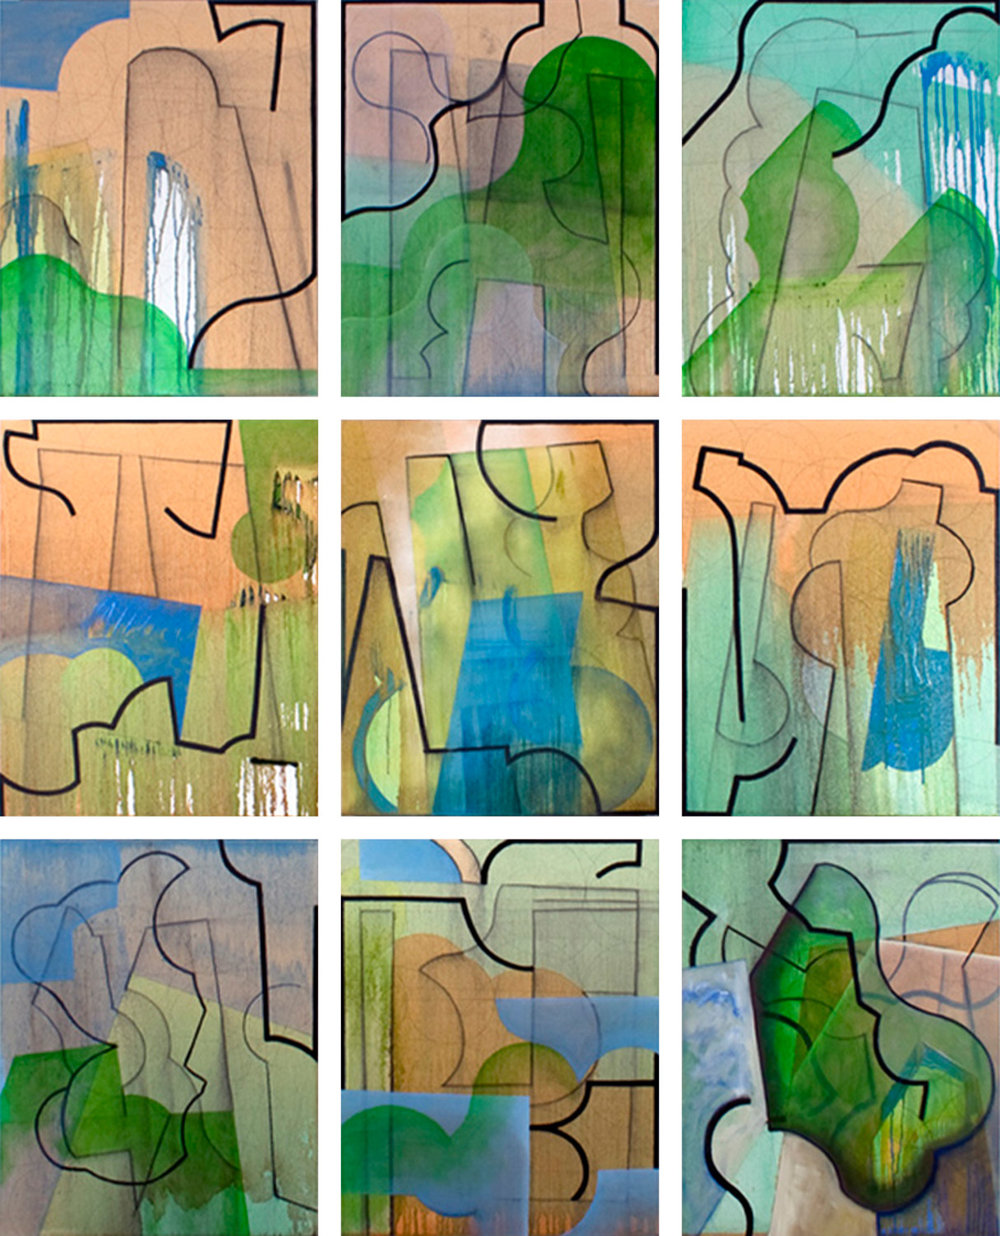 Ovidianism, 9 panels, Summer 2011